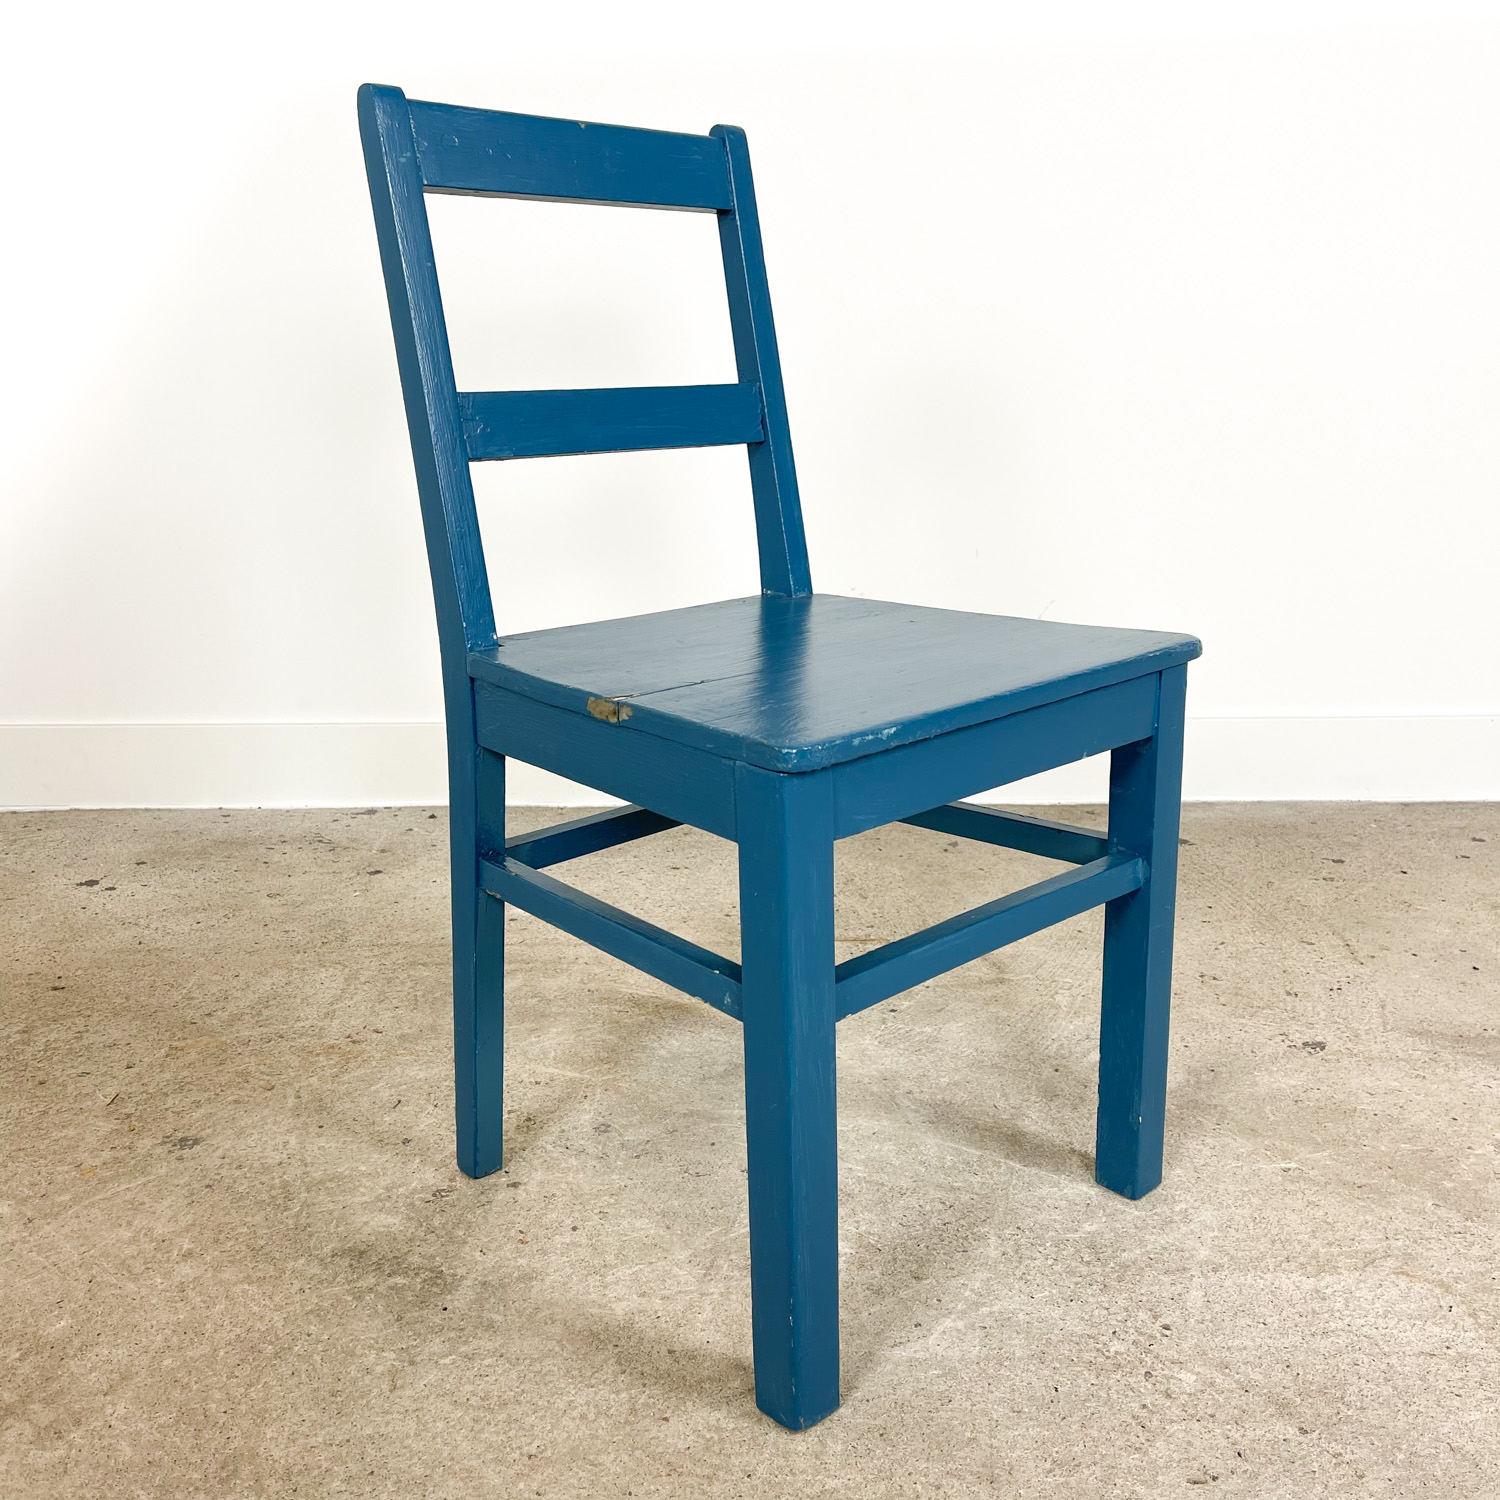 Swedish antique blue painted chair B